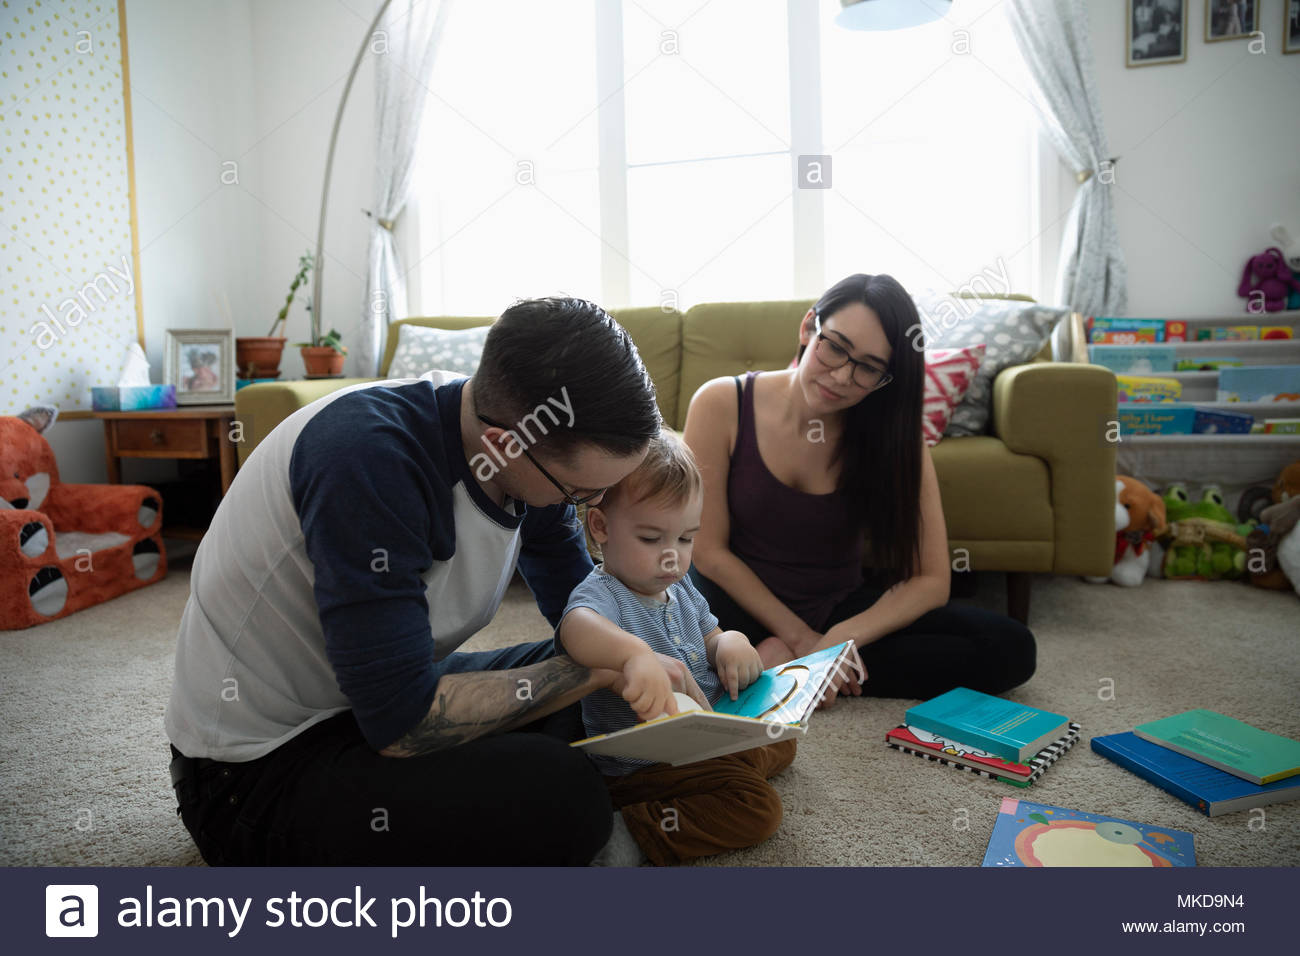 Parents reading story book to baby son in living room - Stock Image